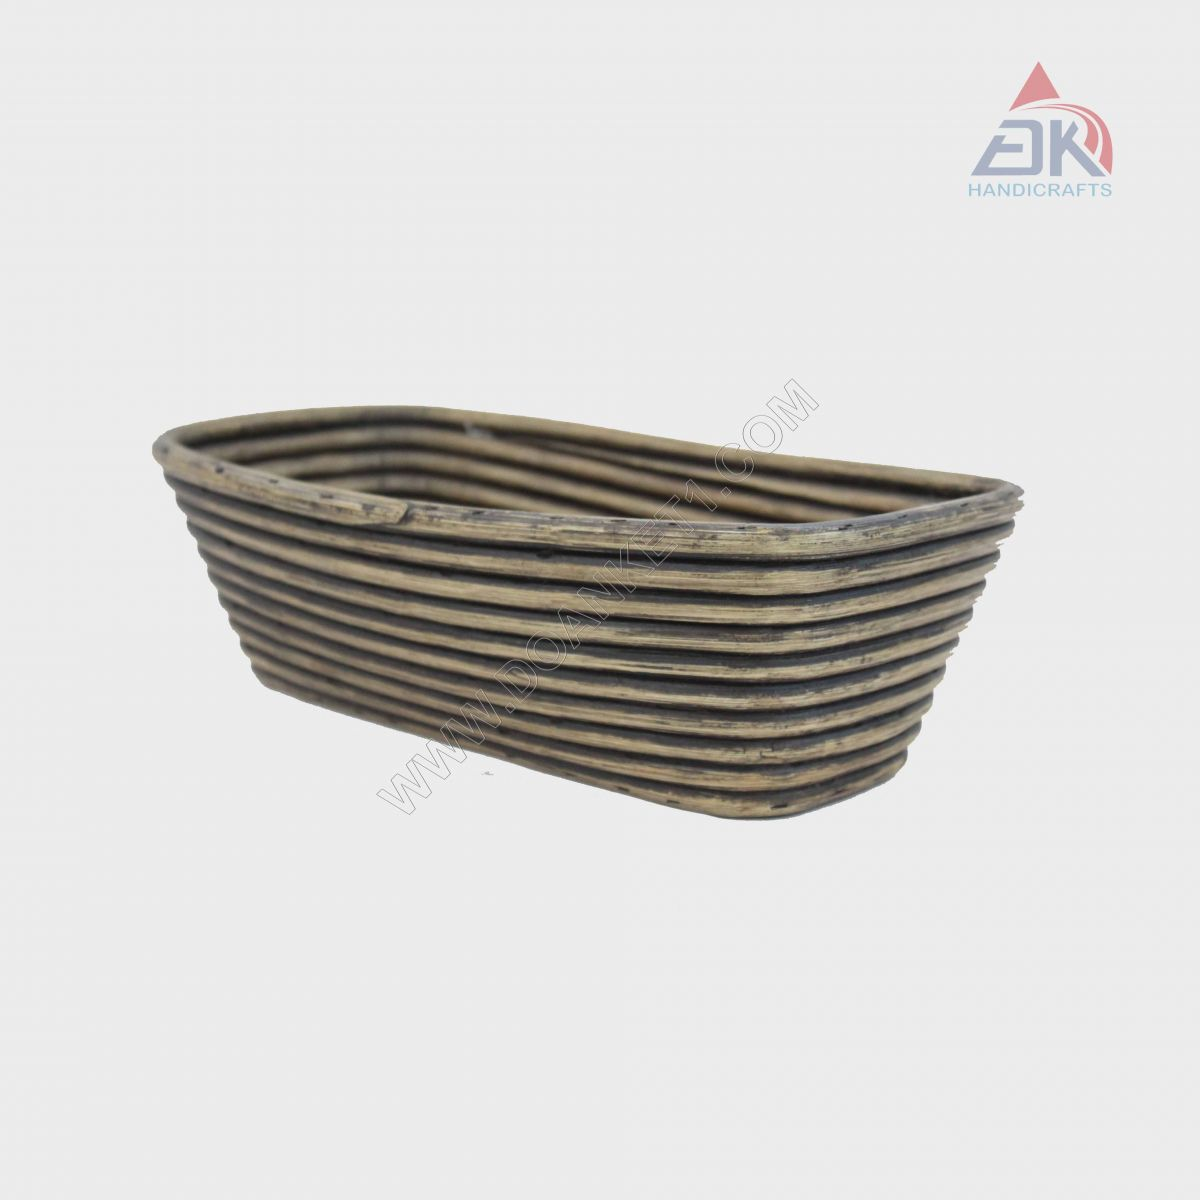 Coiled Oval Basket # DK38